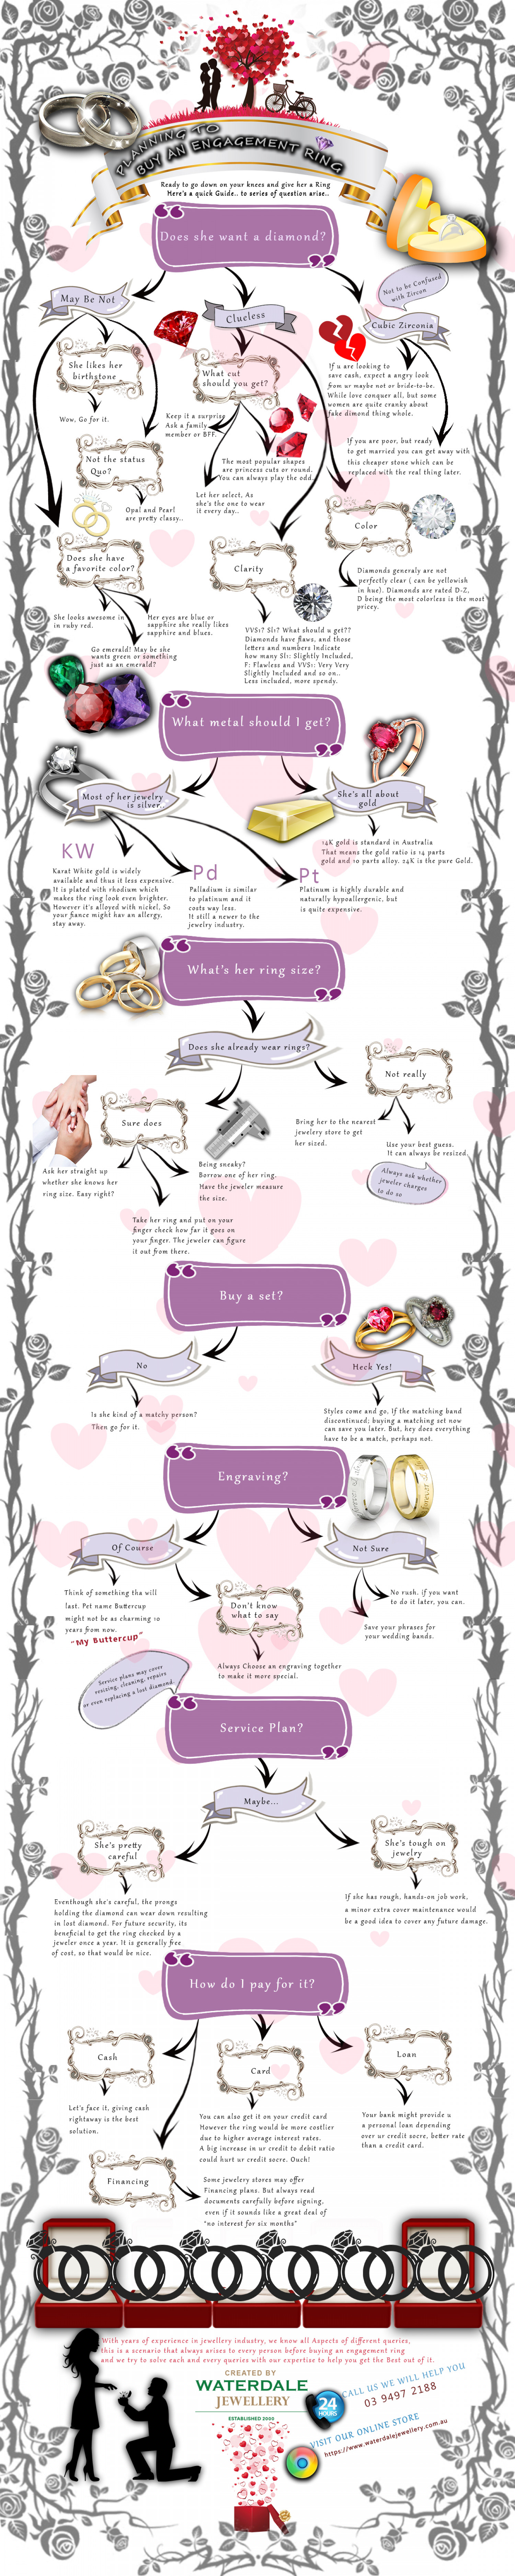 Planning to Buy An Engagement Ring Infographic